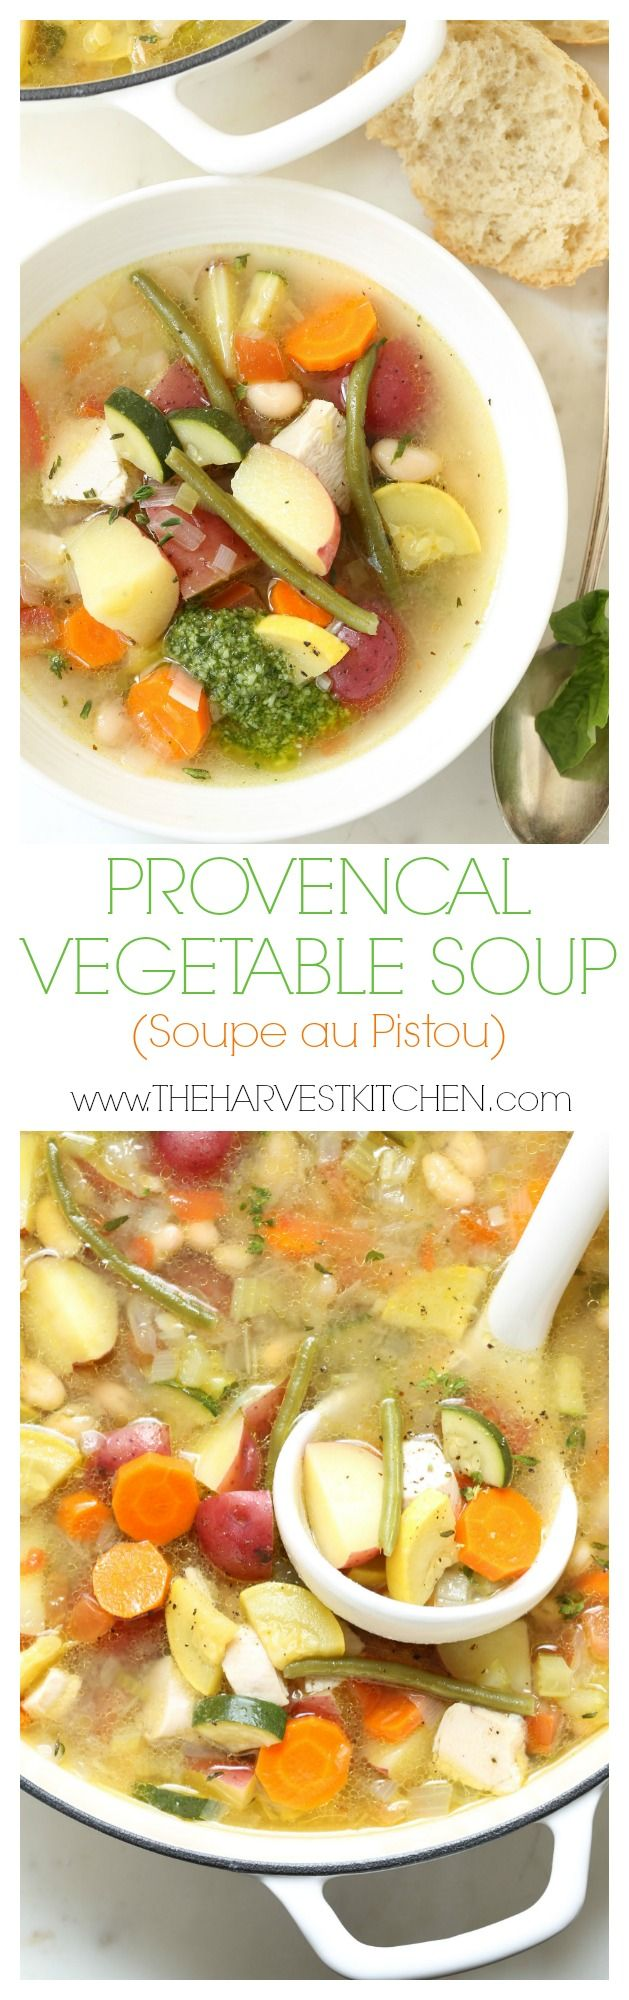 Soupe au pistou is a French vegetable soup similar to the Italian version of minestrone. This is a crowd-pleasing hearty vegetable soup that's loaded with vegetables simmered in a rich chicken stock. A heaping dollop of pesto (pistou) is stirred in at the end. @theharvestkitchen.com